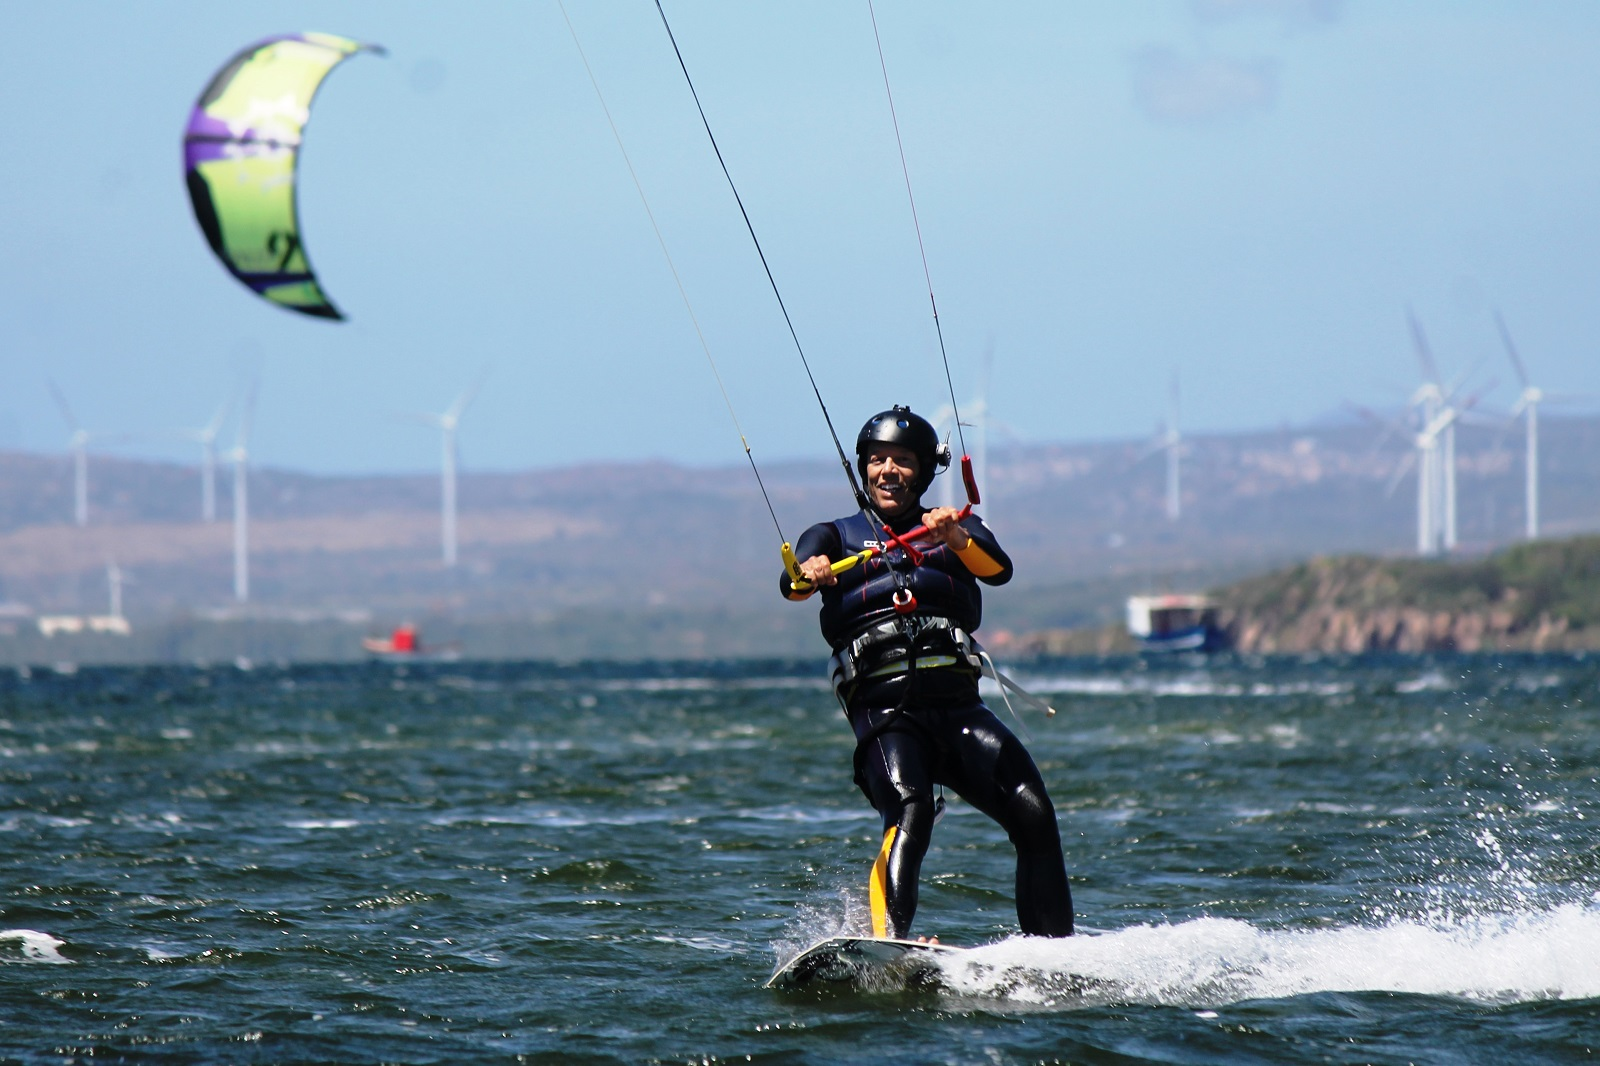 List of 7 Of The Worlds Best Kitesurfing Destinations ...